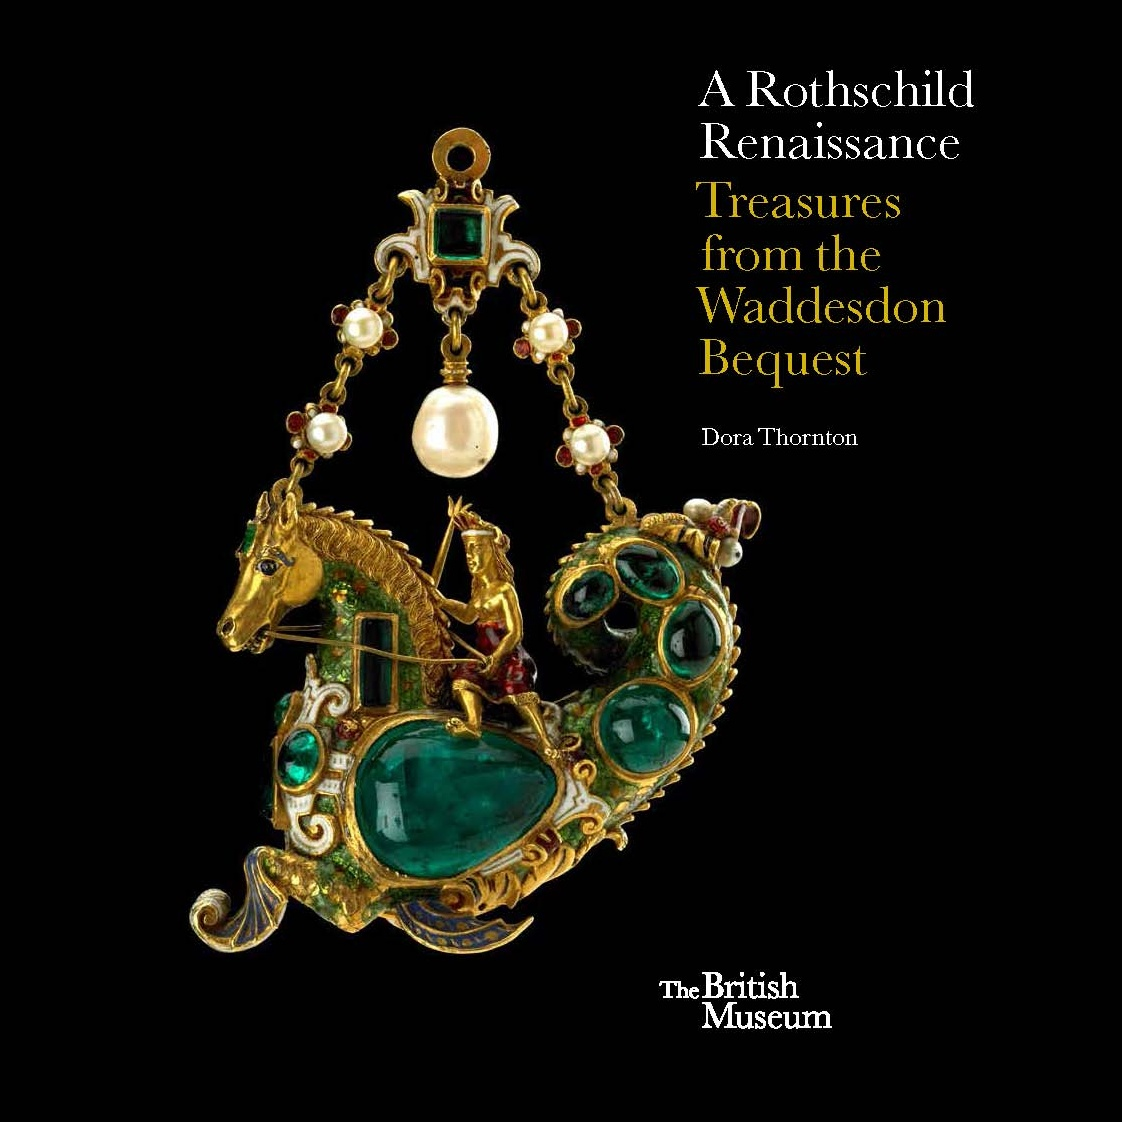 A Rothschild Renaissance reviewed by Elizabeth Braimbridge